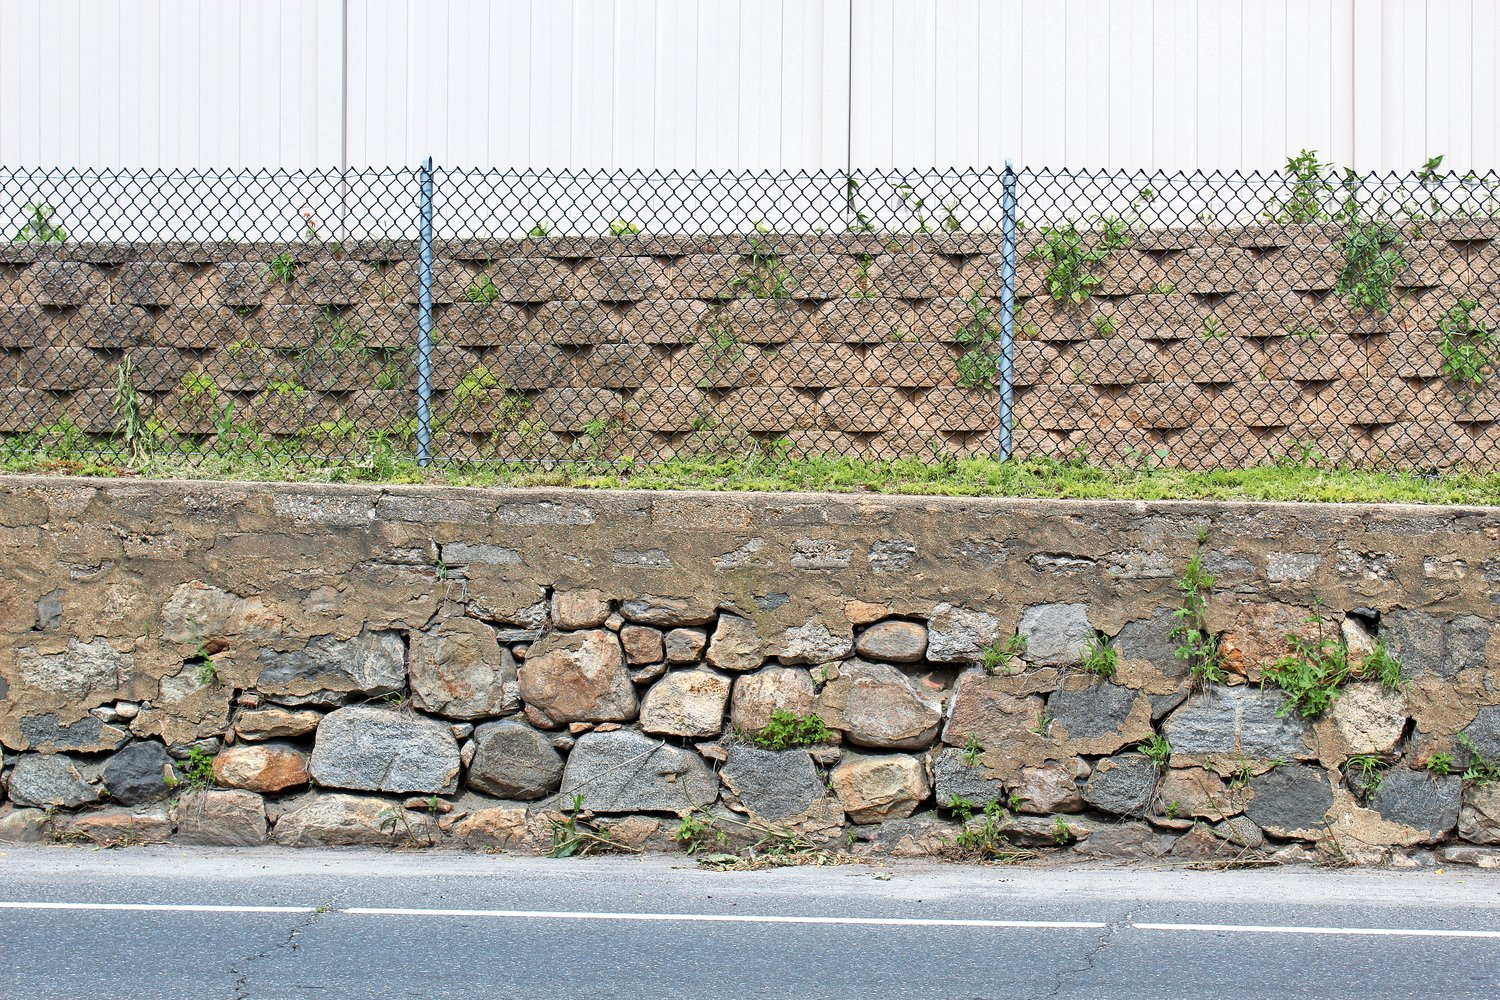 A retaining wall on Glen Cove Avenue in Glen Head appears to be deteriorating.